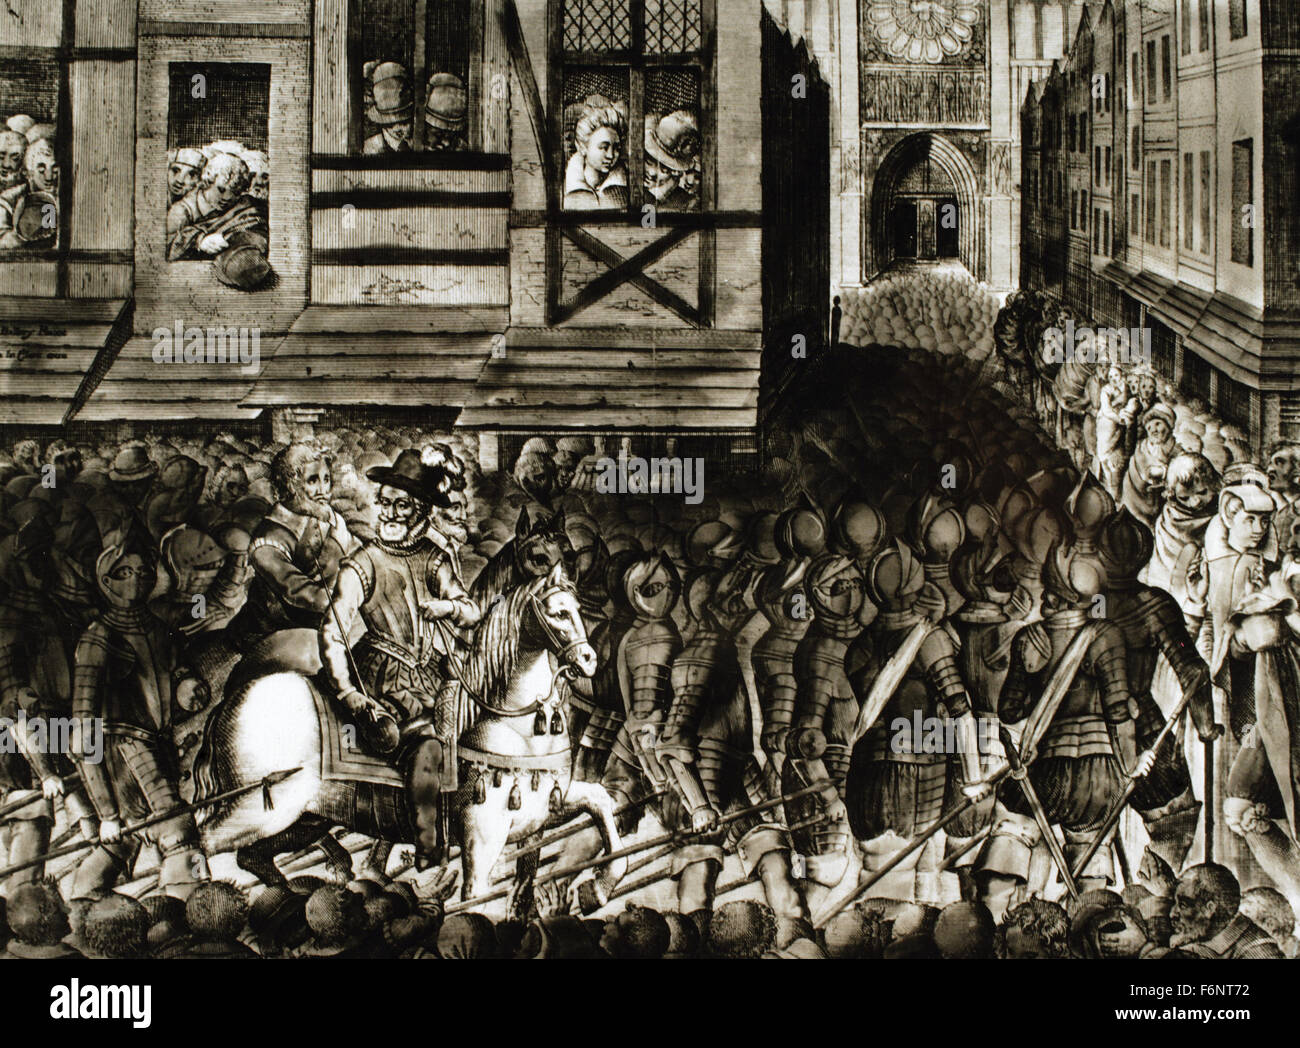 Entrance of Henry IV of France (1553-1610) in Paris, 22 March 1594, with 1.500 cuirassiers. Engraving. Stock Photo